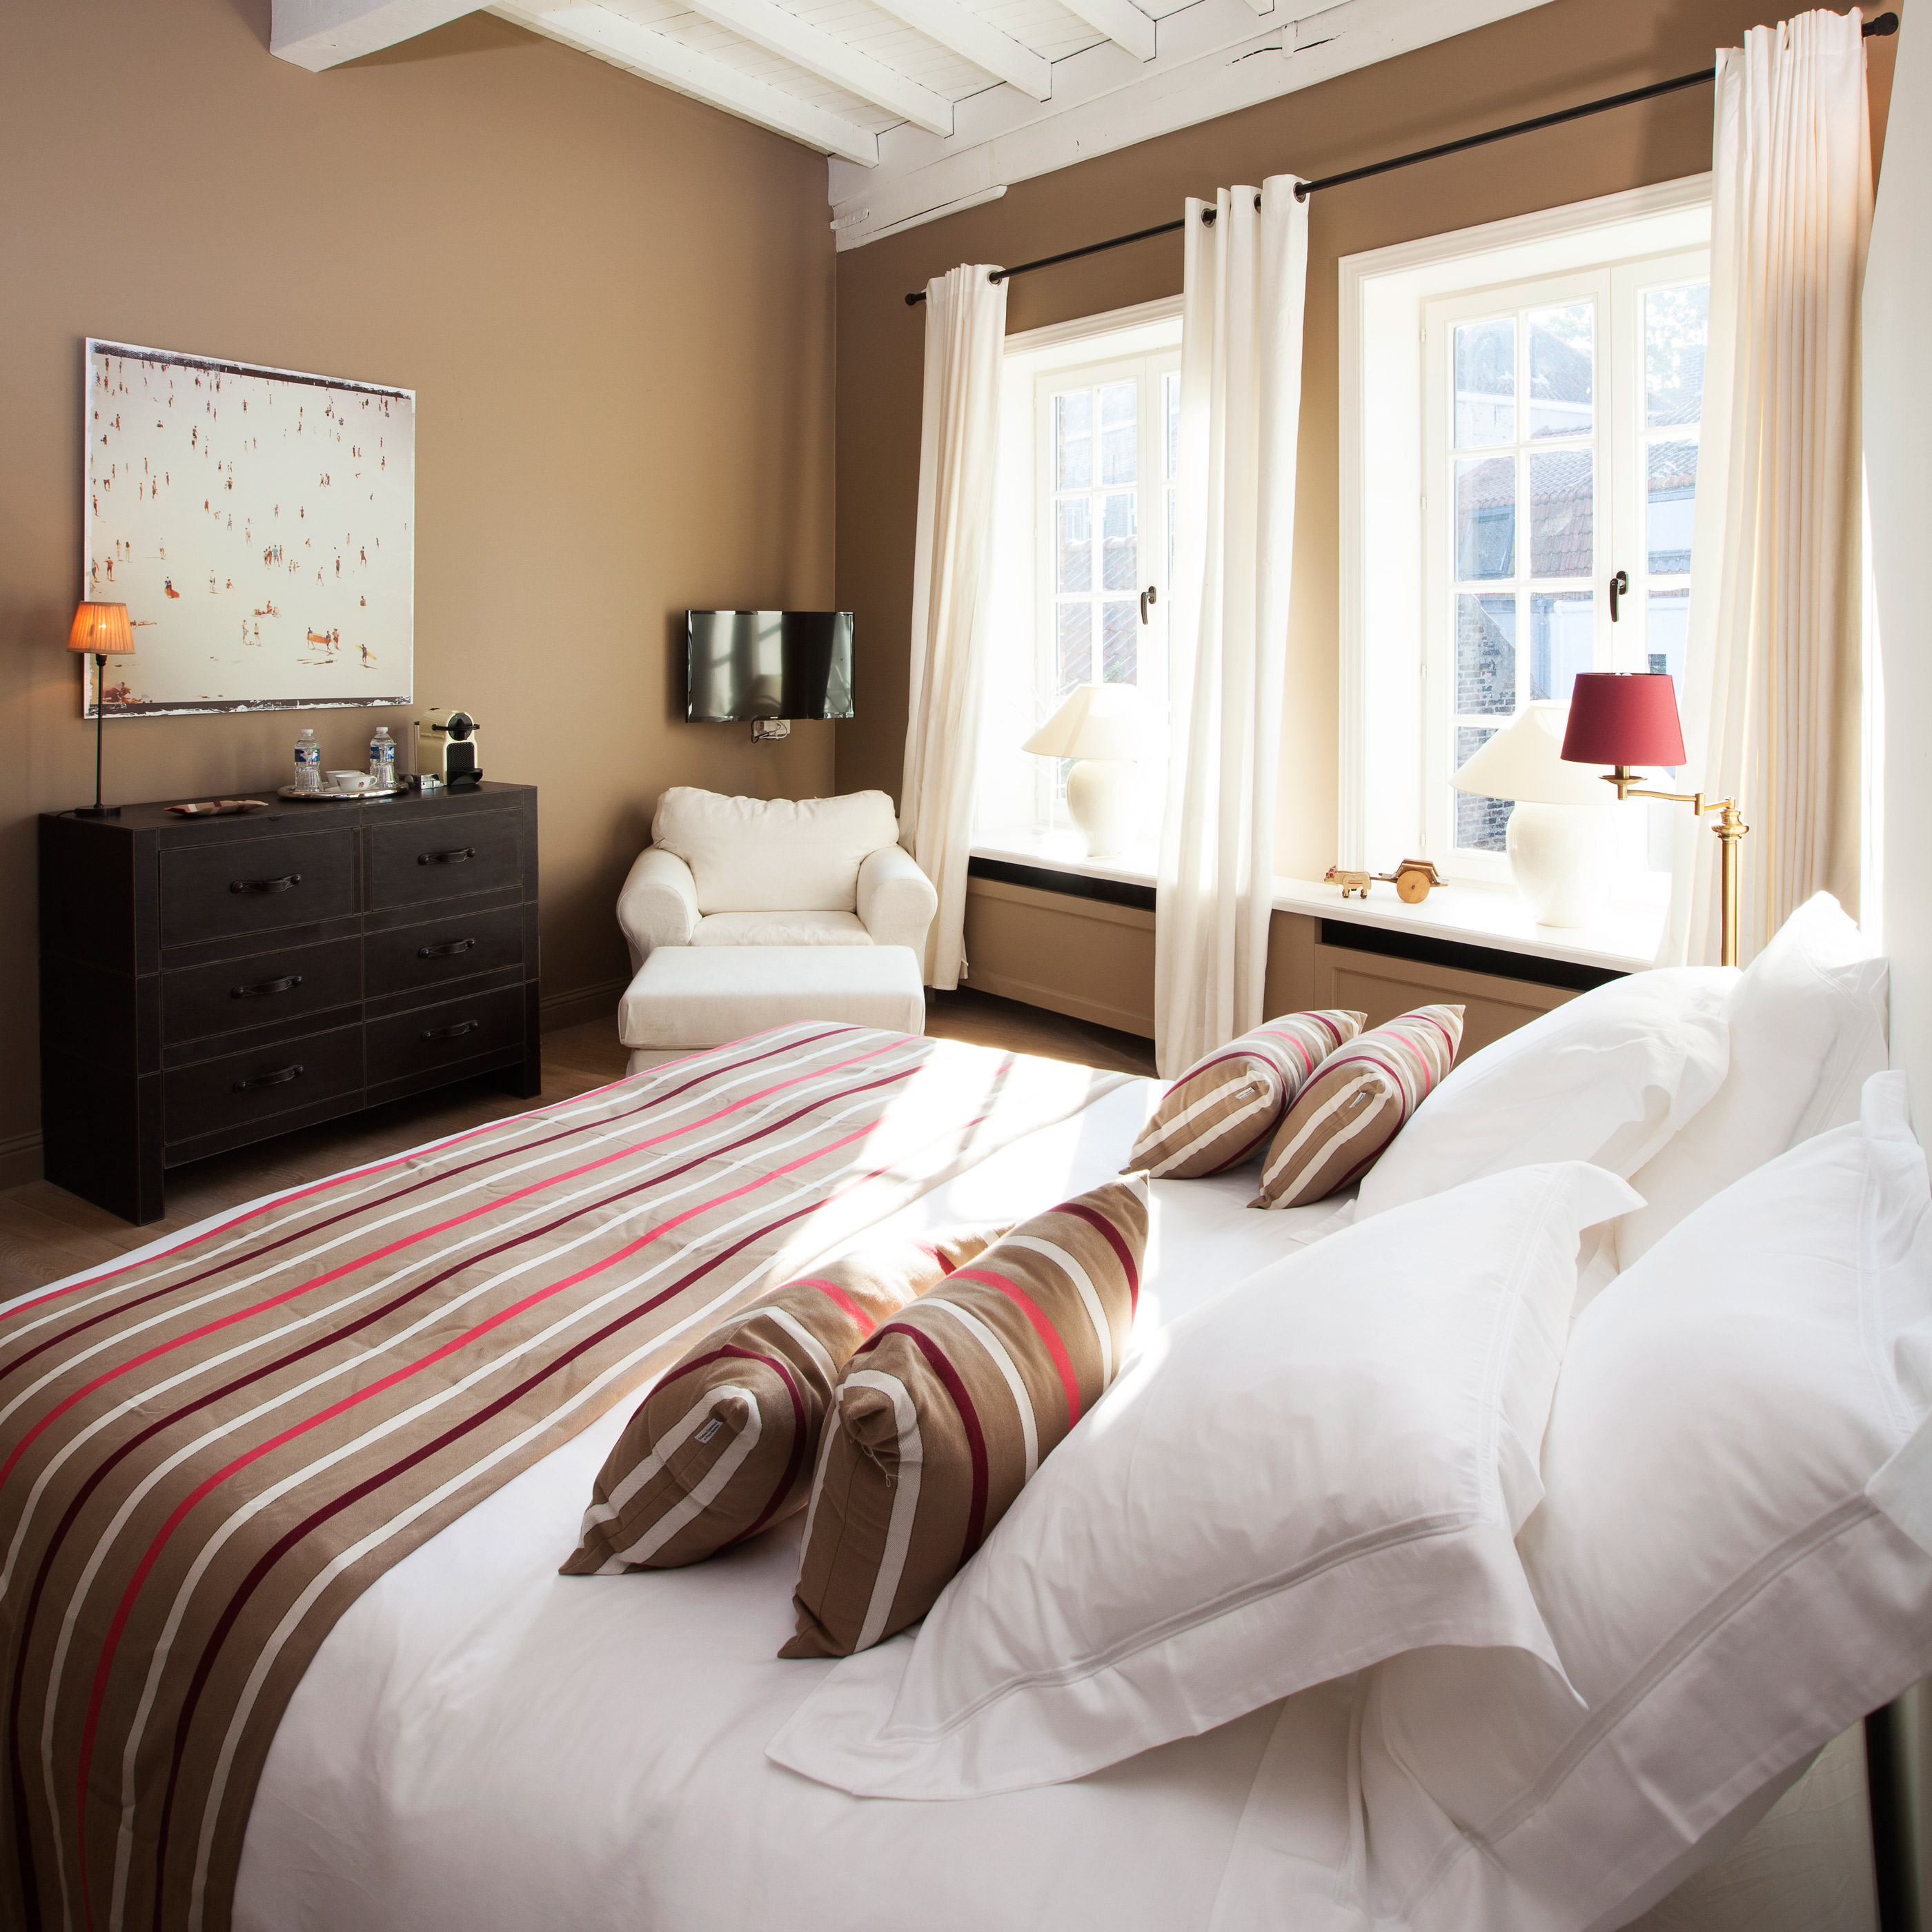 De Biarritz-kamer in bed and breakfast Maison Amodio in Brugge.